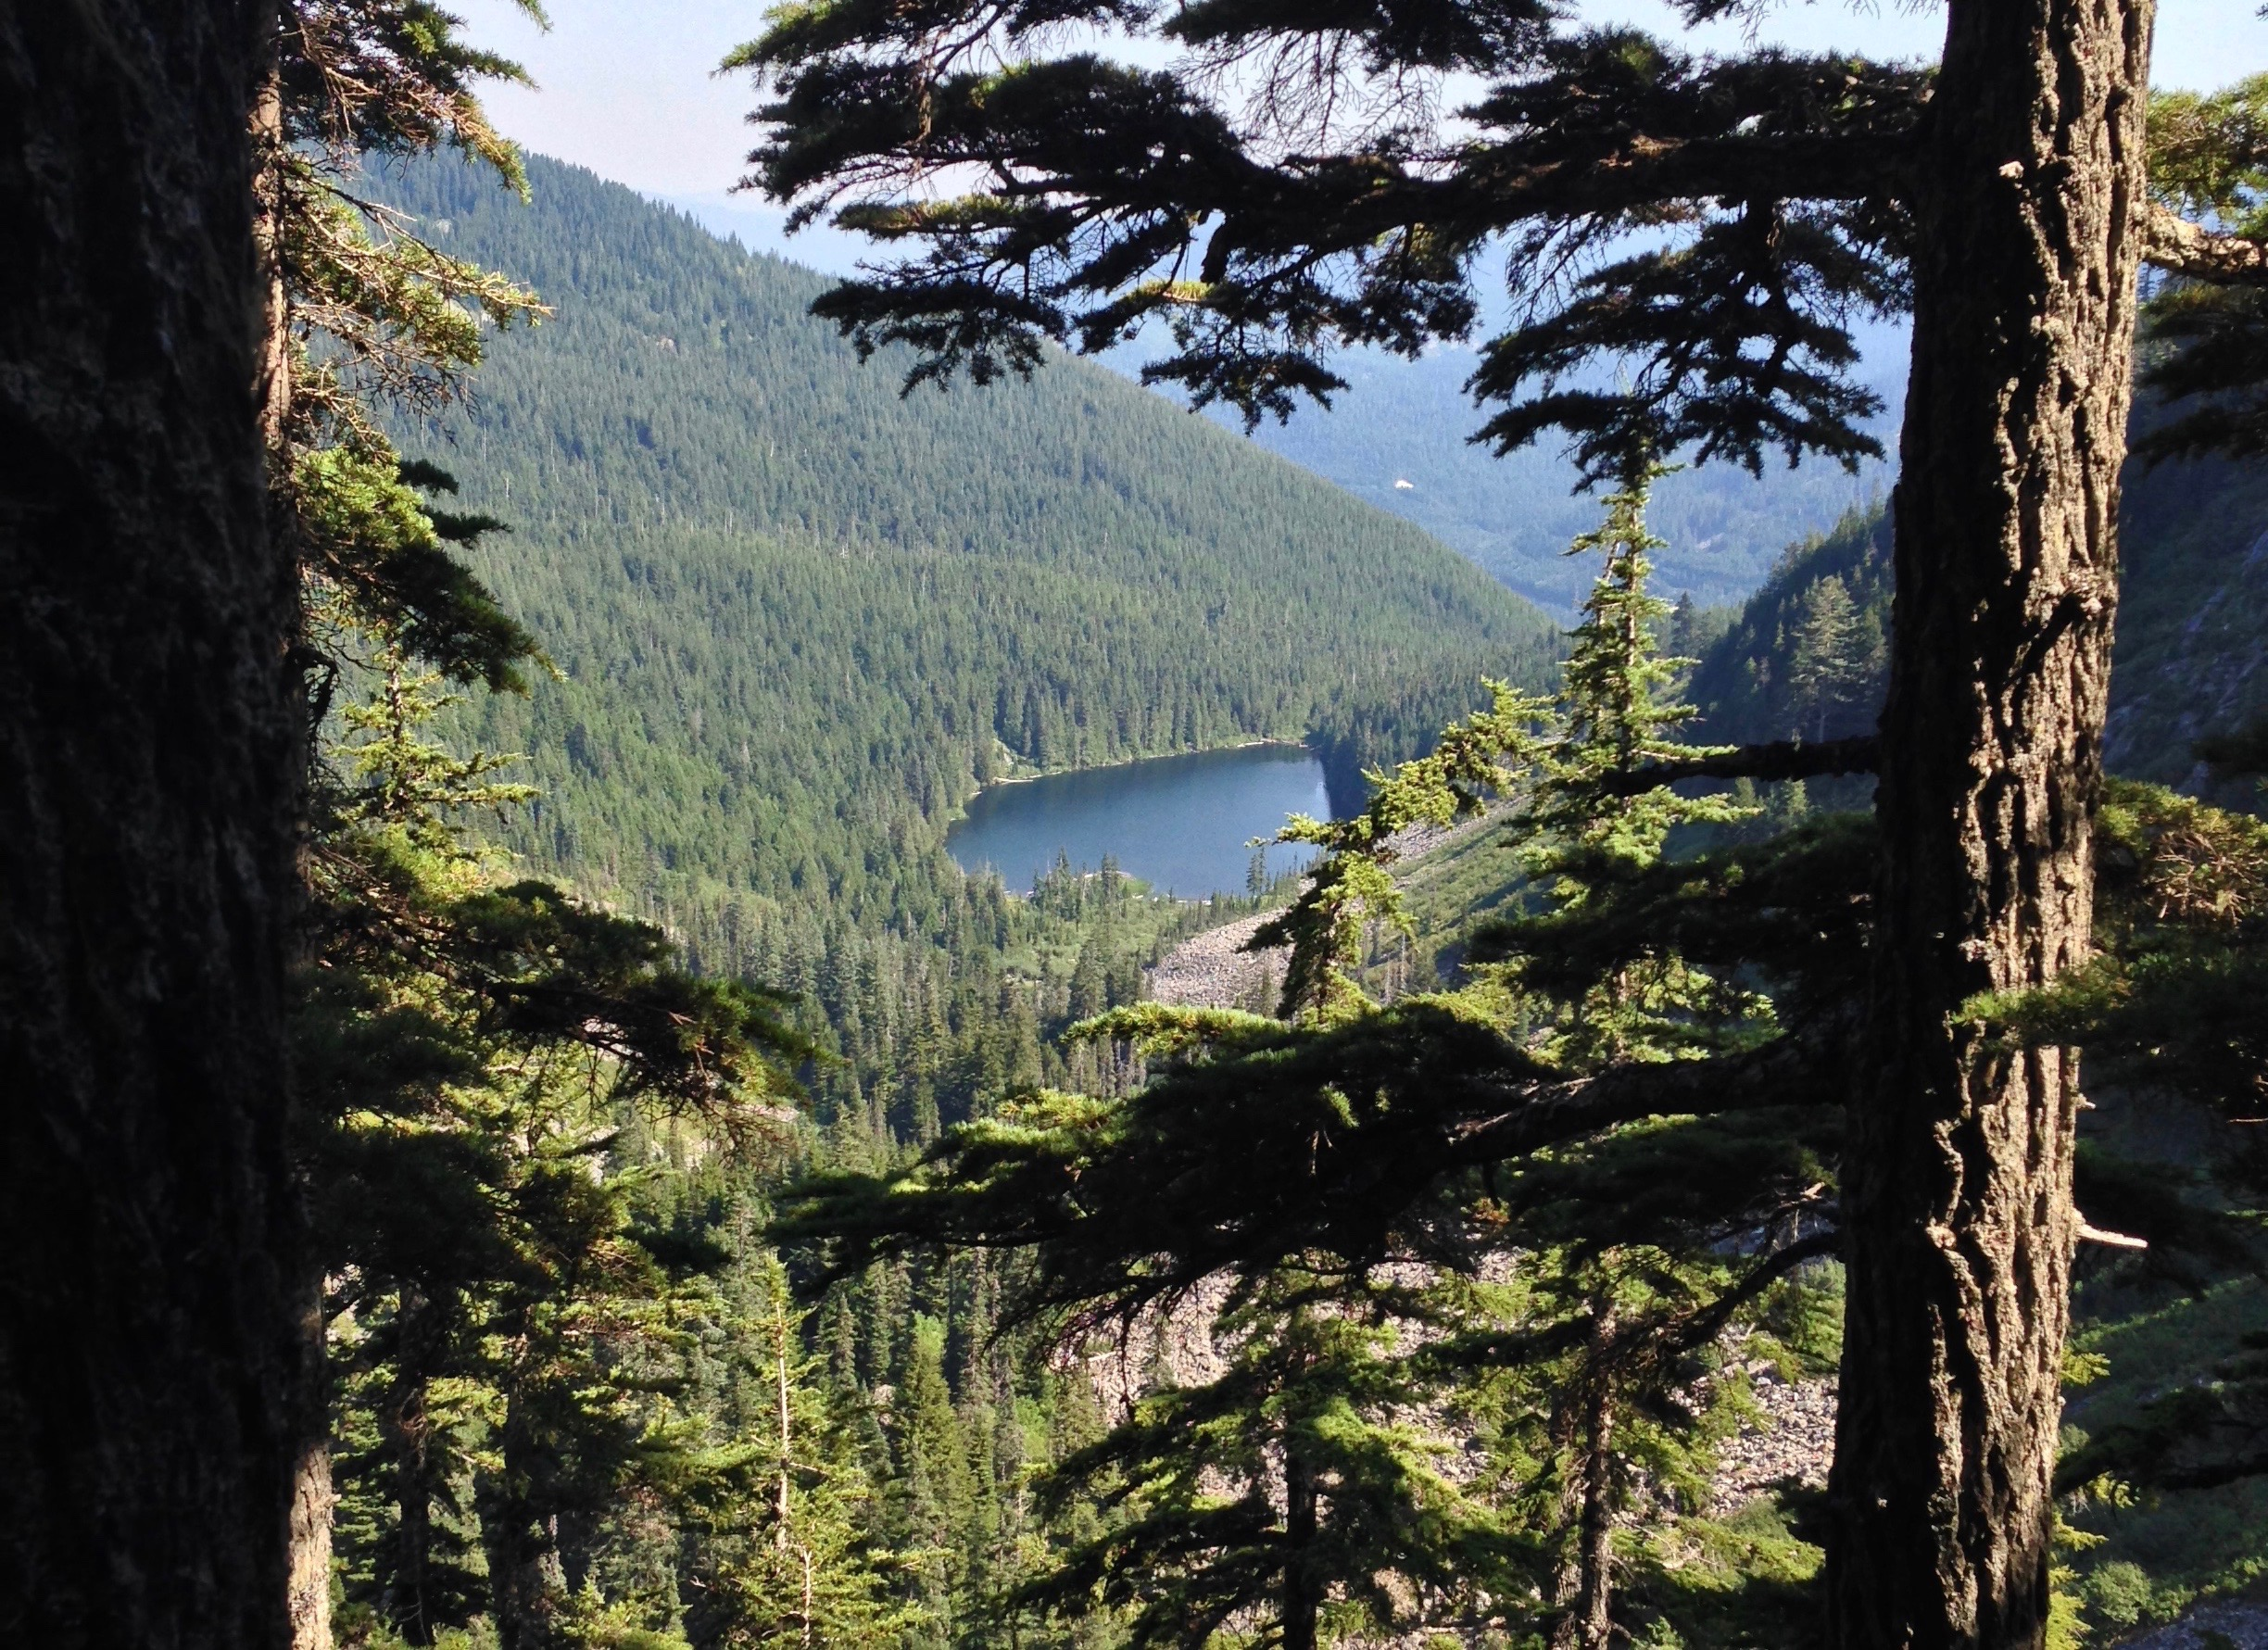 Just before reaching Island Lake, the ridgetop side trail affords a peekaboo view of Talapus Lake lying far down the valley below, where Island Lake's waters next pause before continuing their journey. Ira Spring Trail, August 10, 2014.